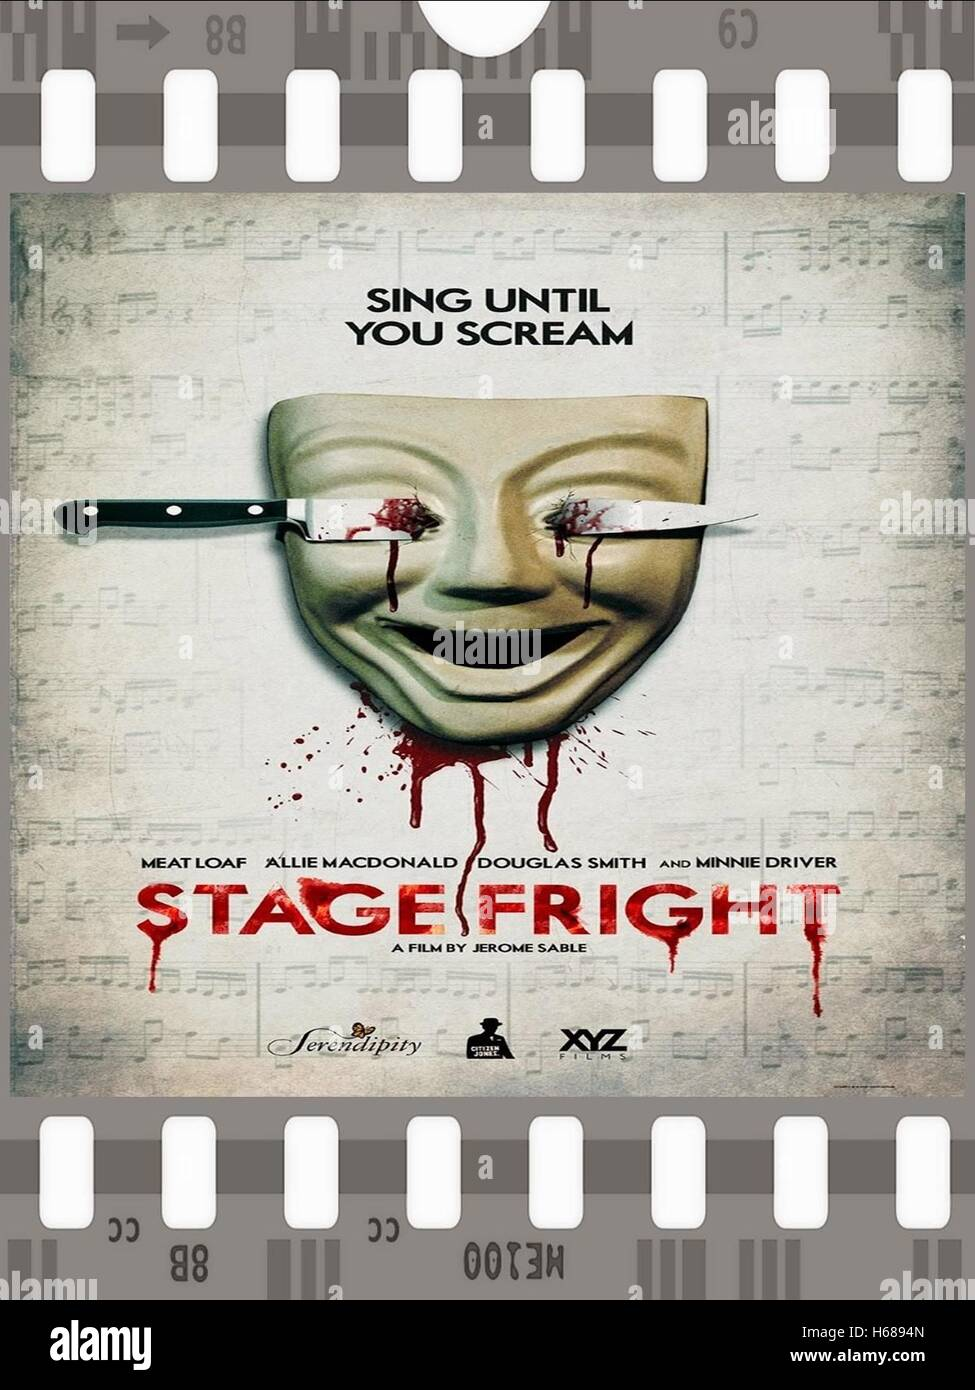 MOVIE POSTER STAGE FRIGHT (2014) - Stock Image